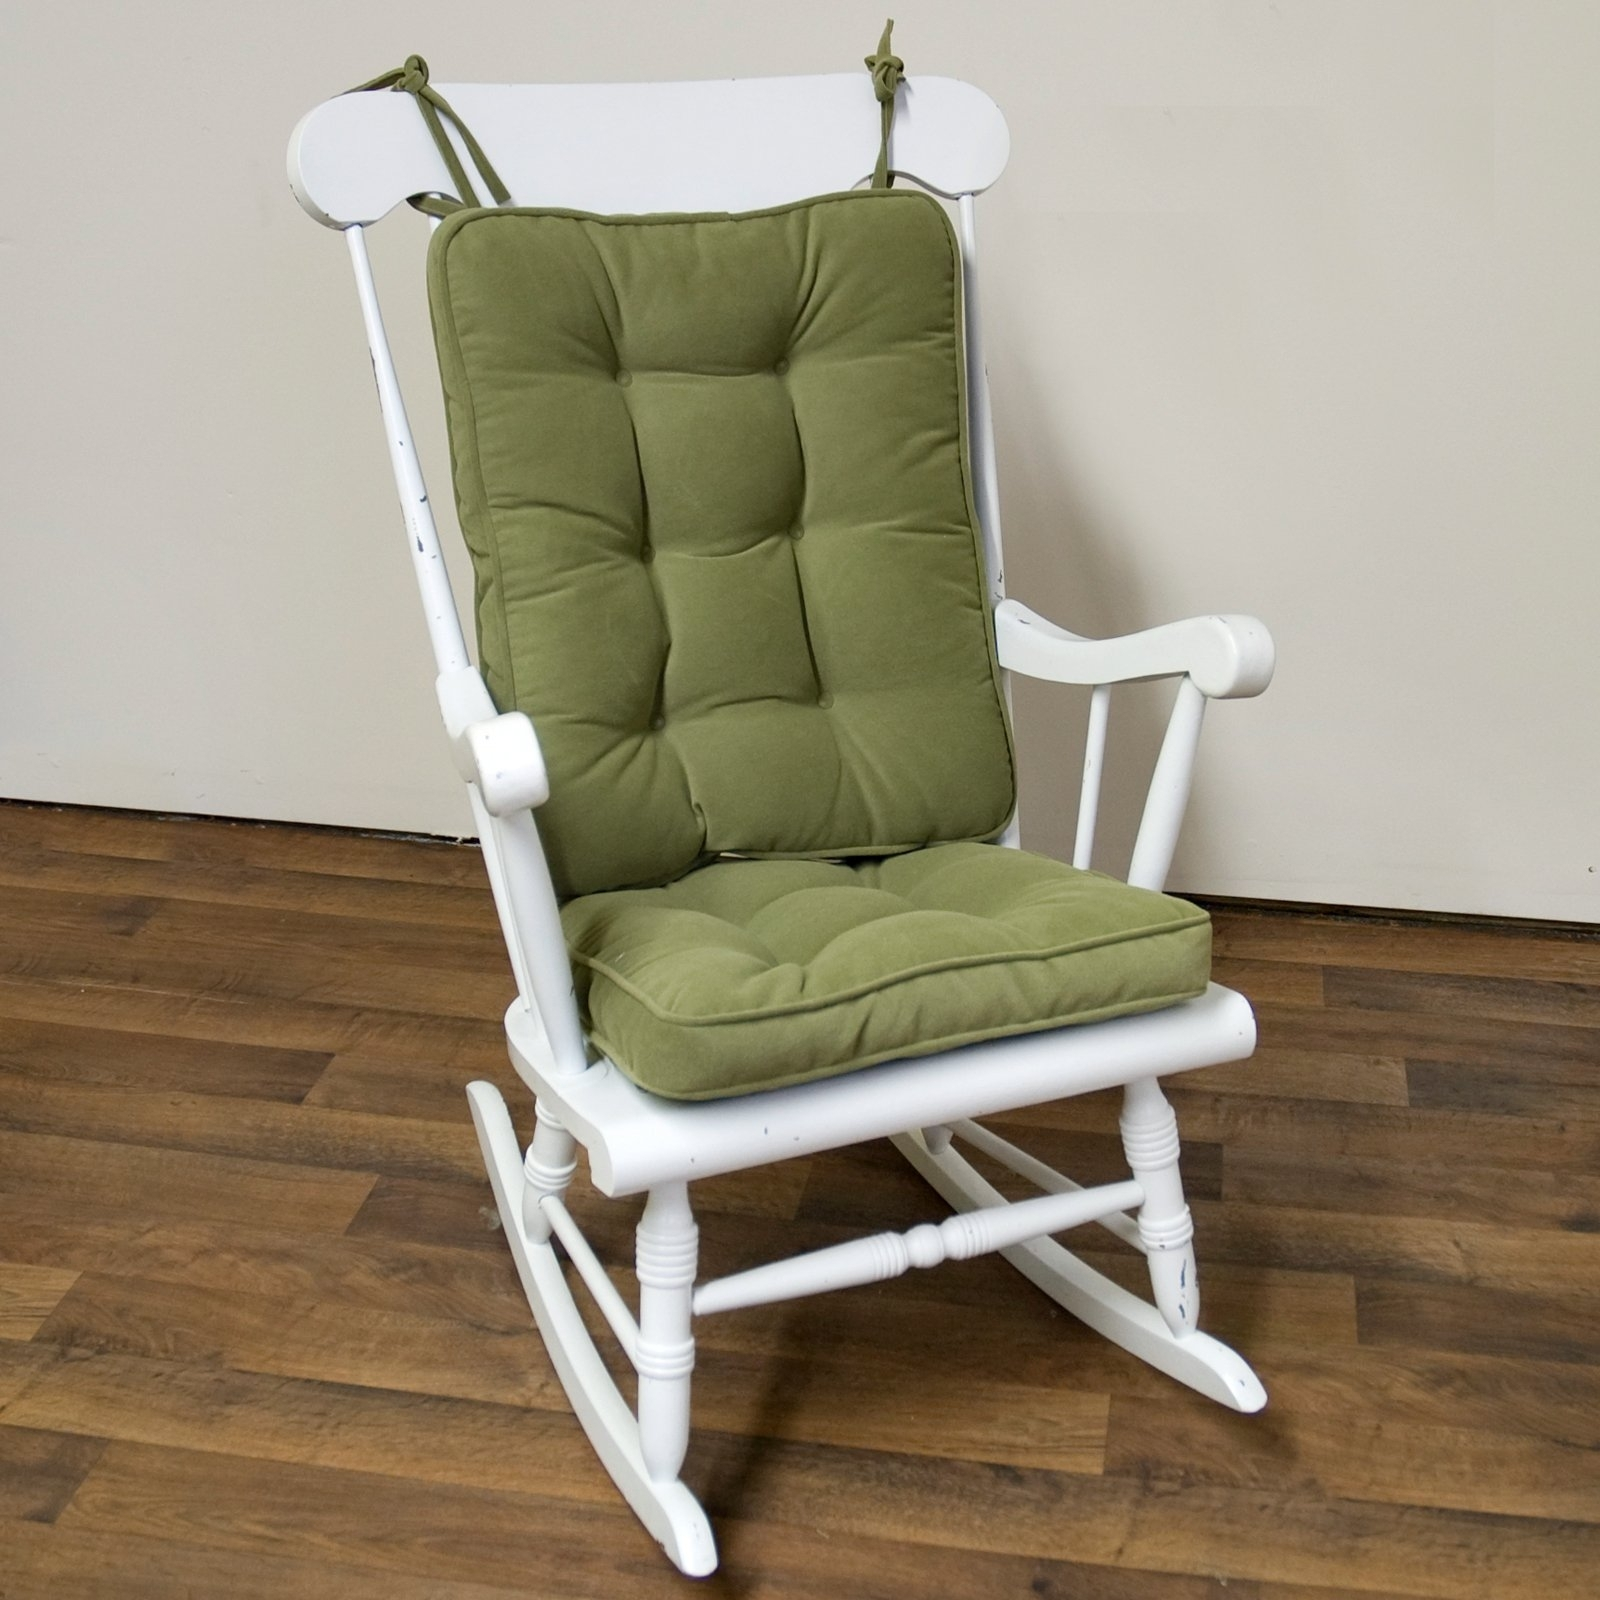 The Ultimate Comfort  Rocking Chair Cushions – Tcg With Regard To Well Liked Rocking Chairs With Cushions (View 19 of 20)